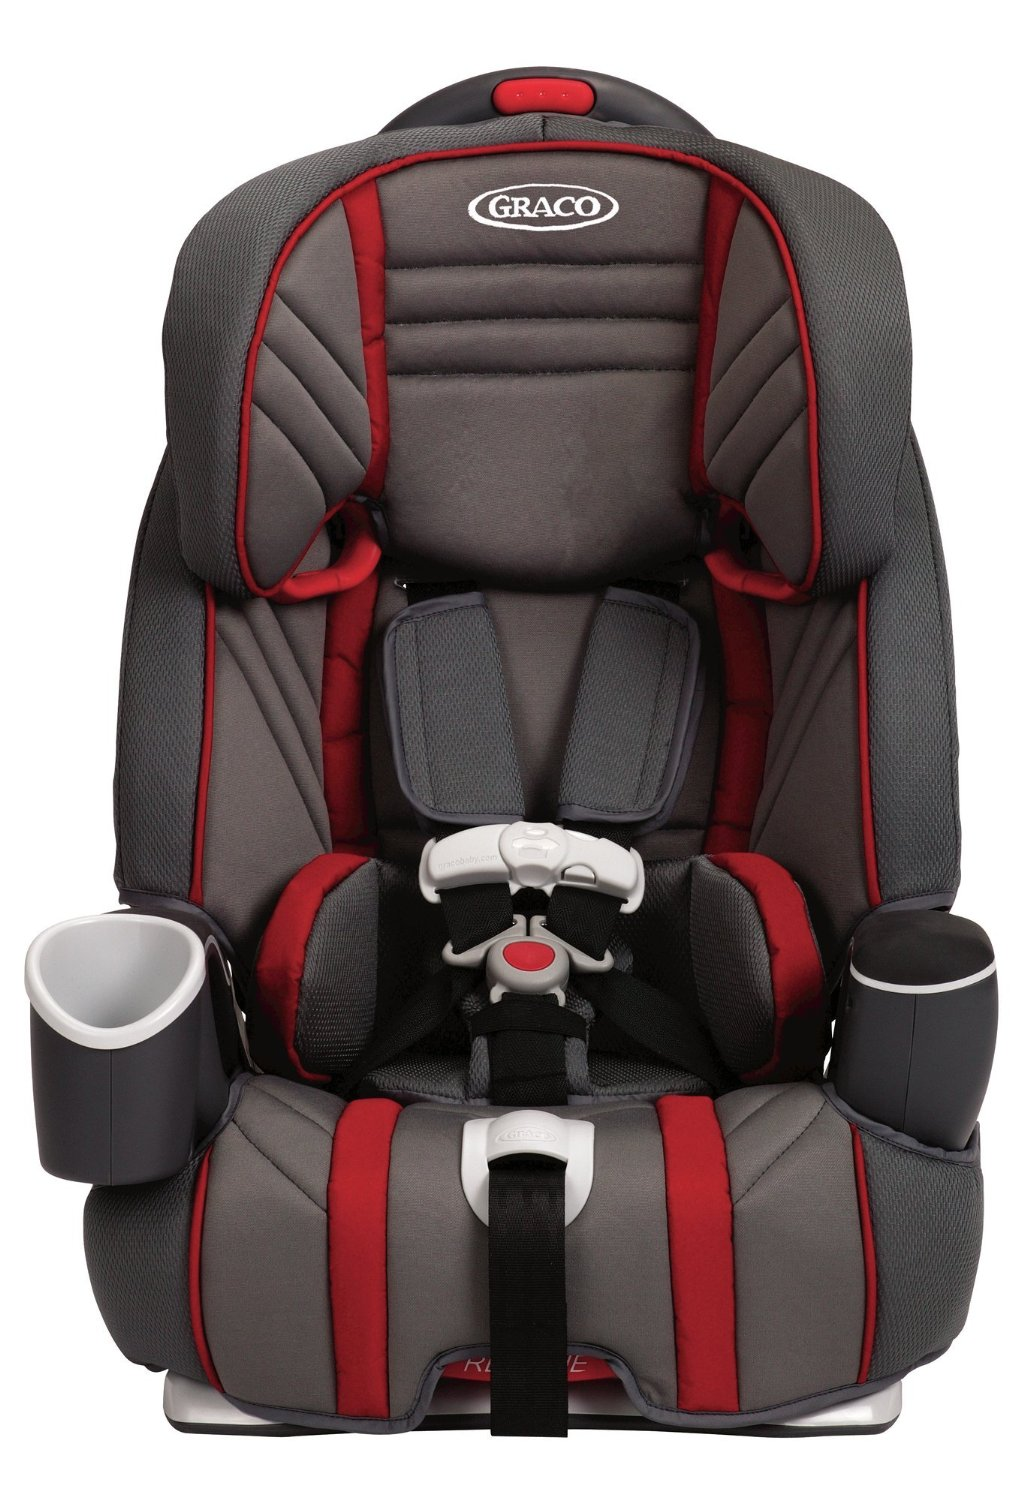 Backpack, Baby Car Seat How To Keep Your Baby Safe